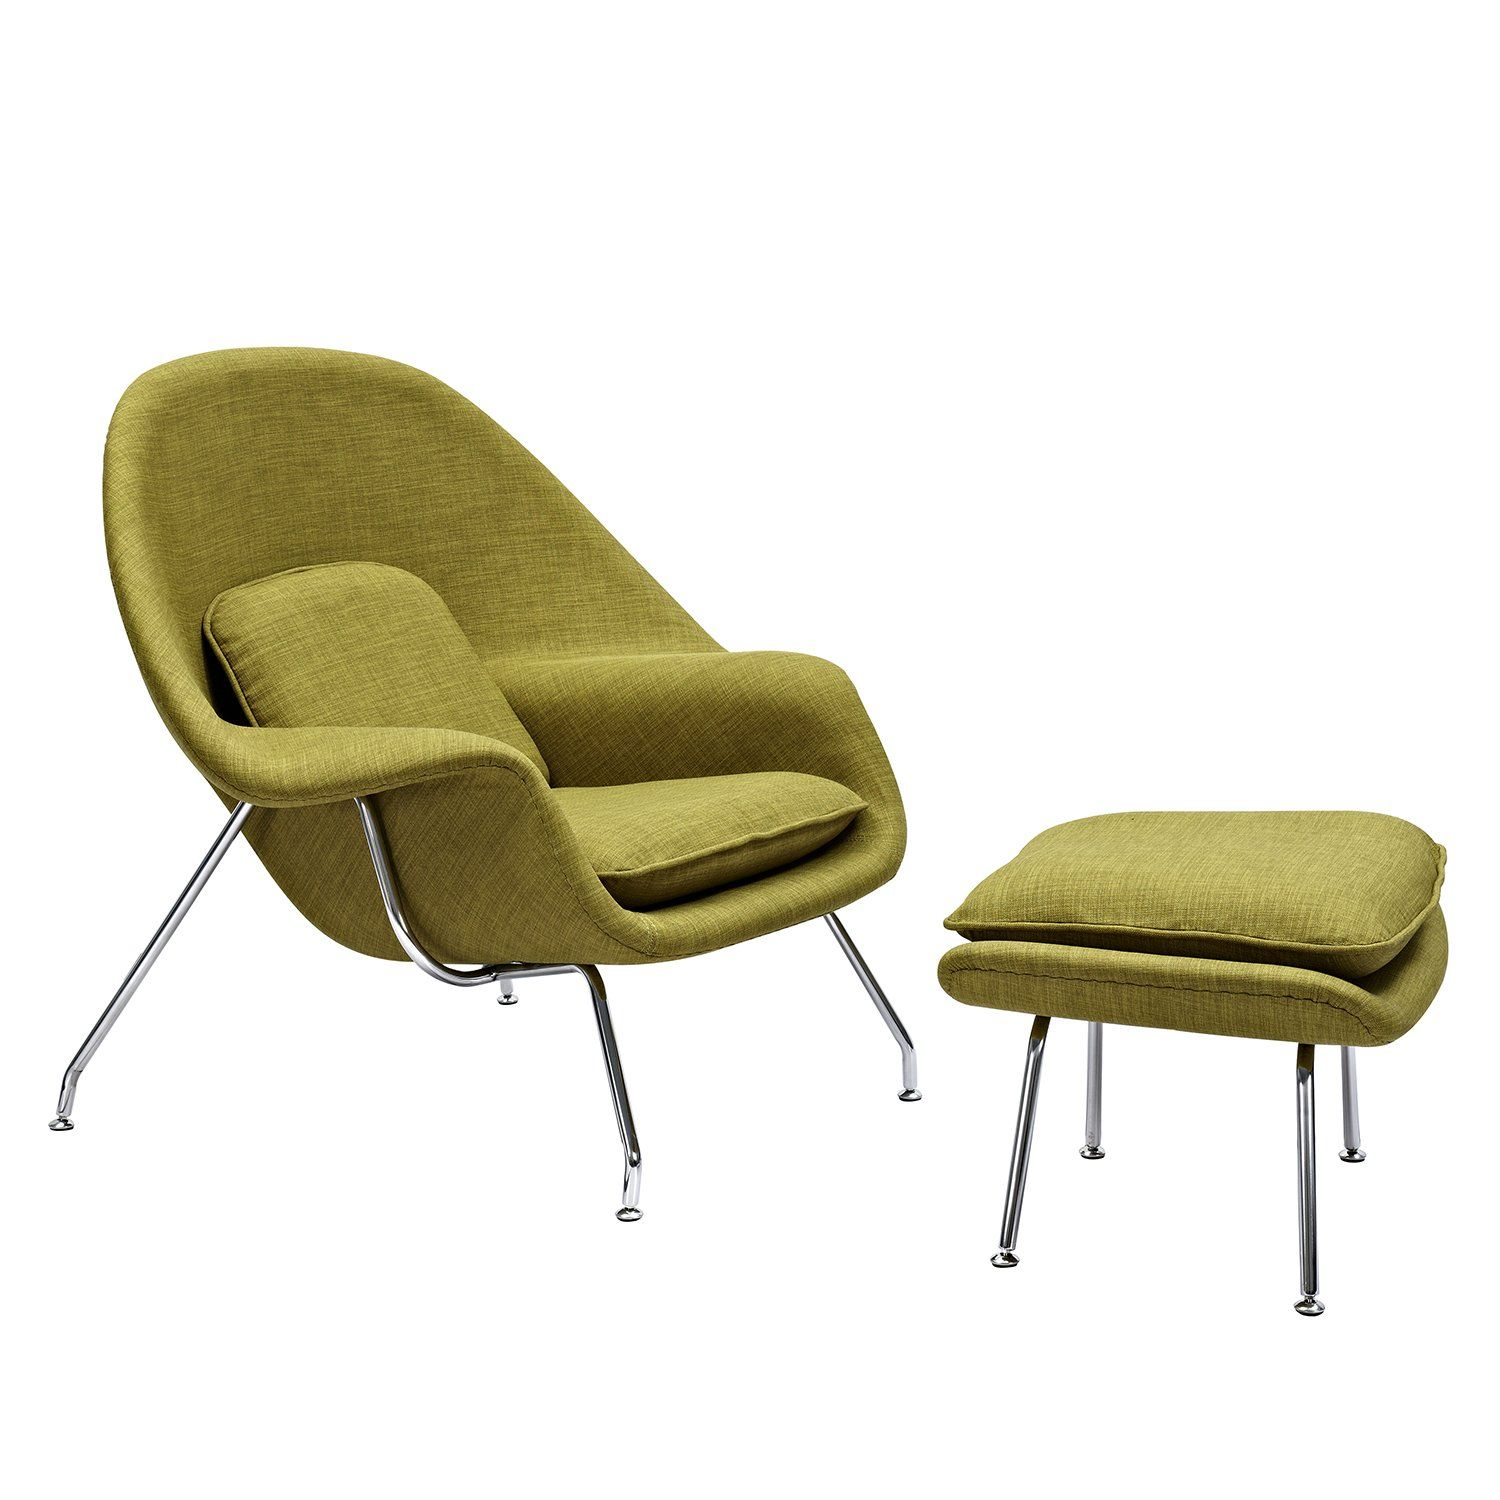 Saro midcentury modern chair and ottoman in avocado green fabric on